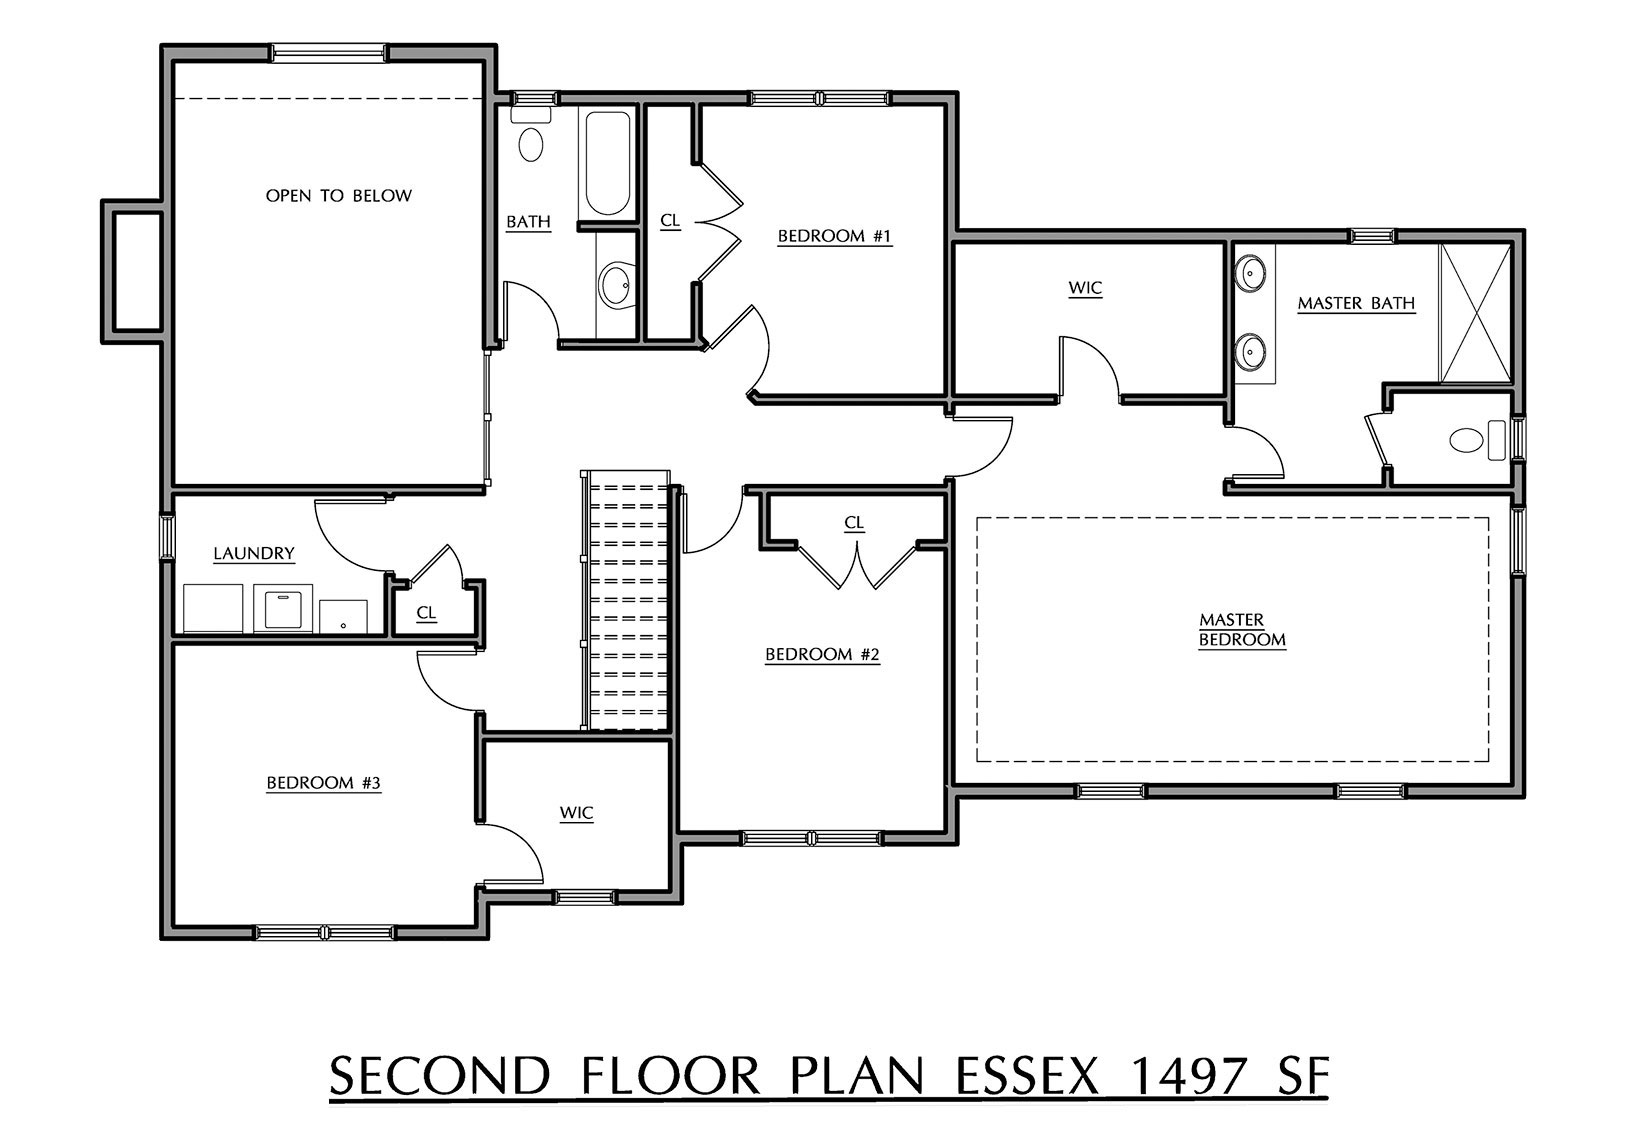 Essex - Second Floor Plan